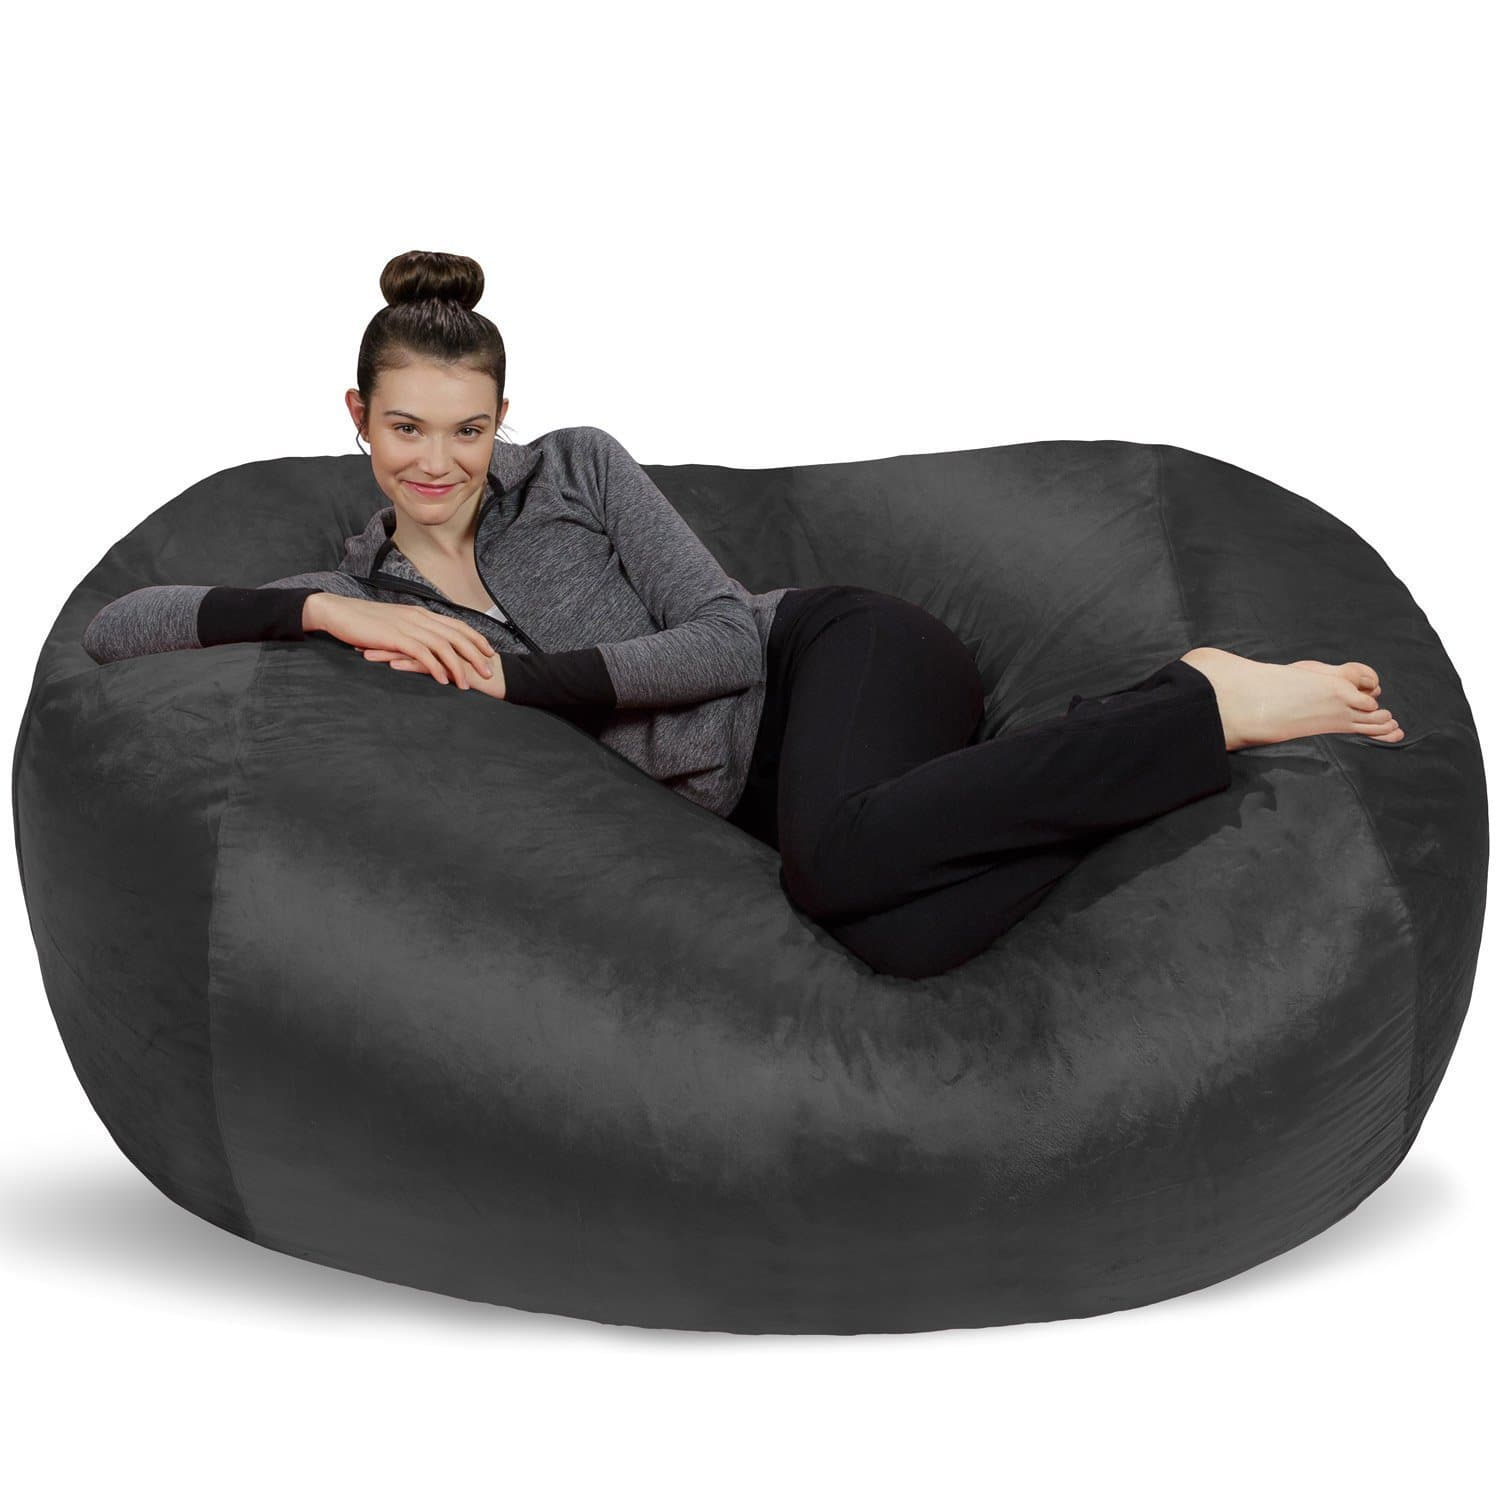 Top 10 Best Bean Bag Chairs in 2017 TopReviewProducts